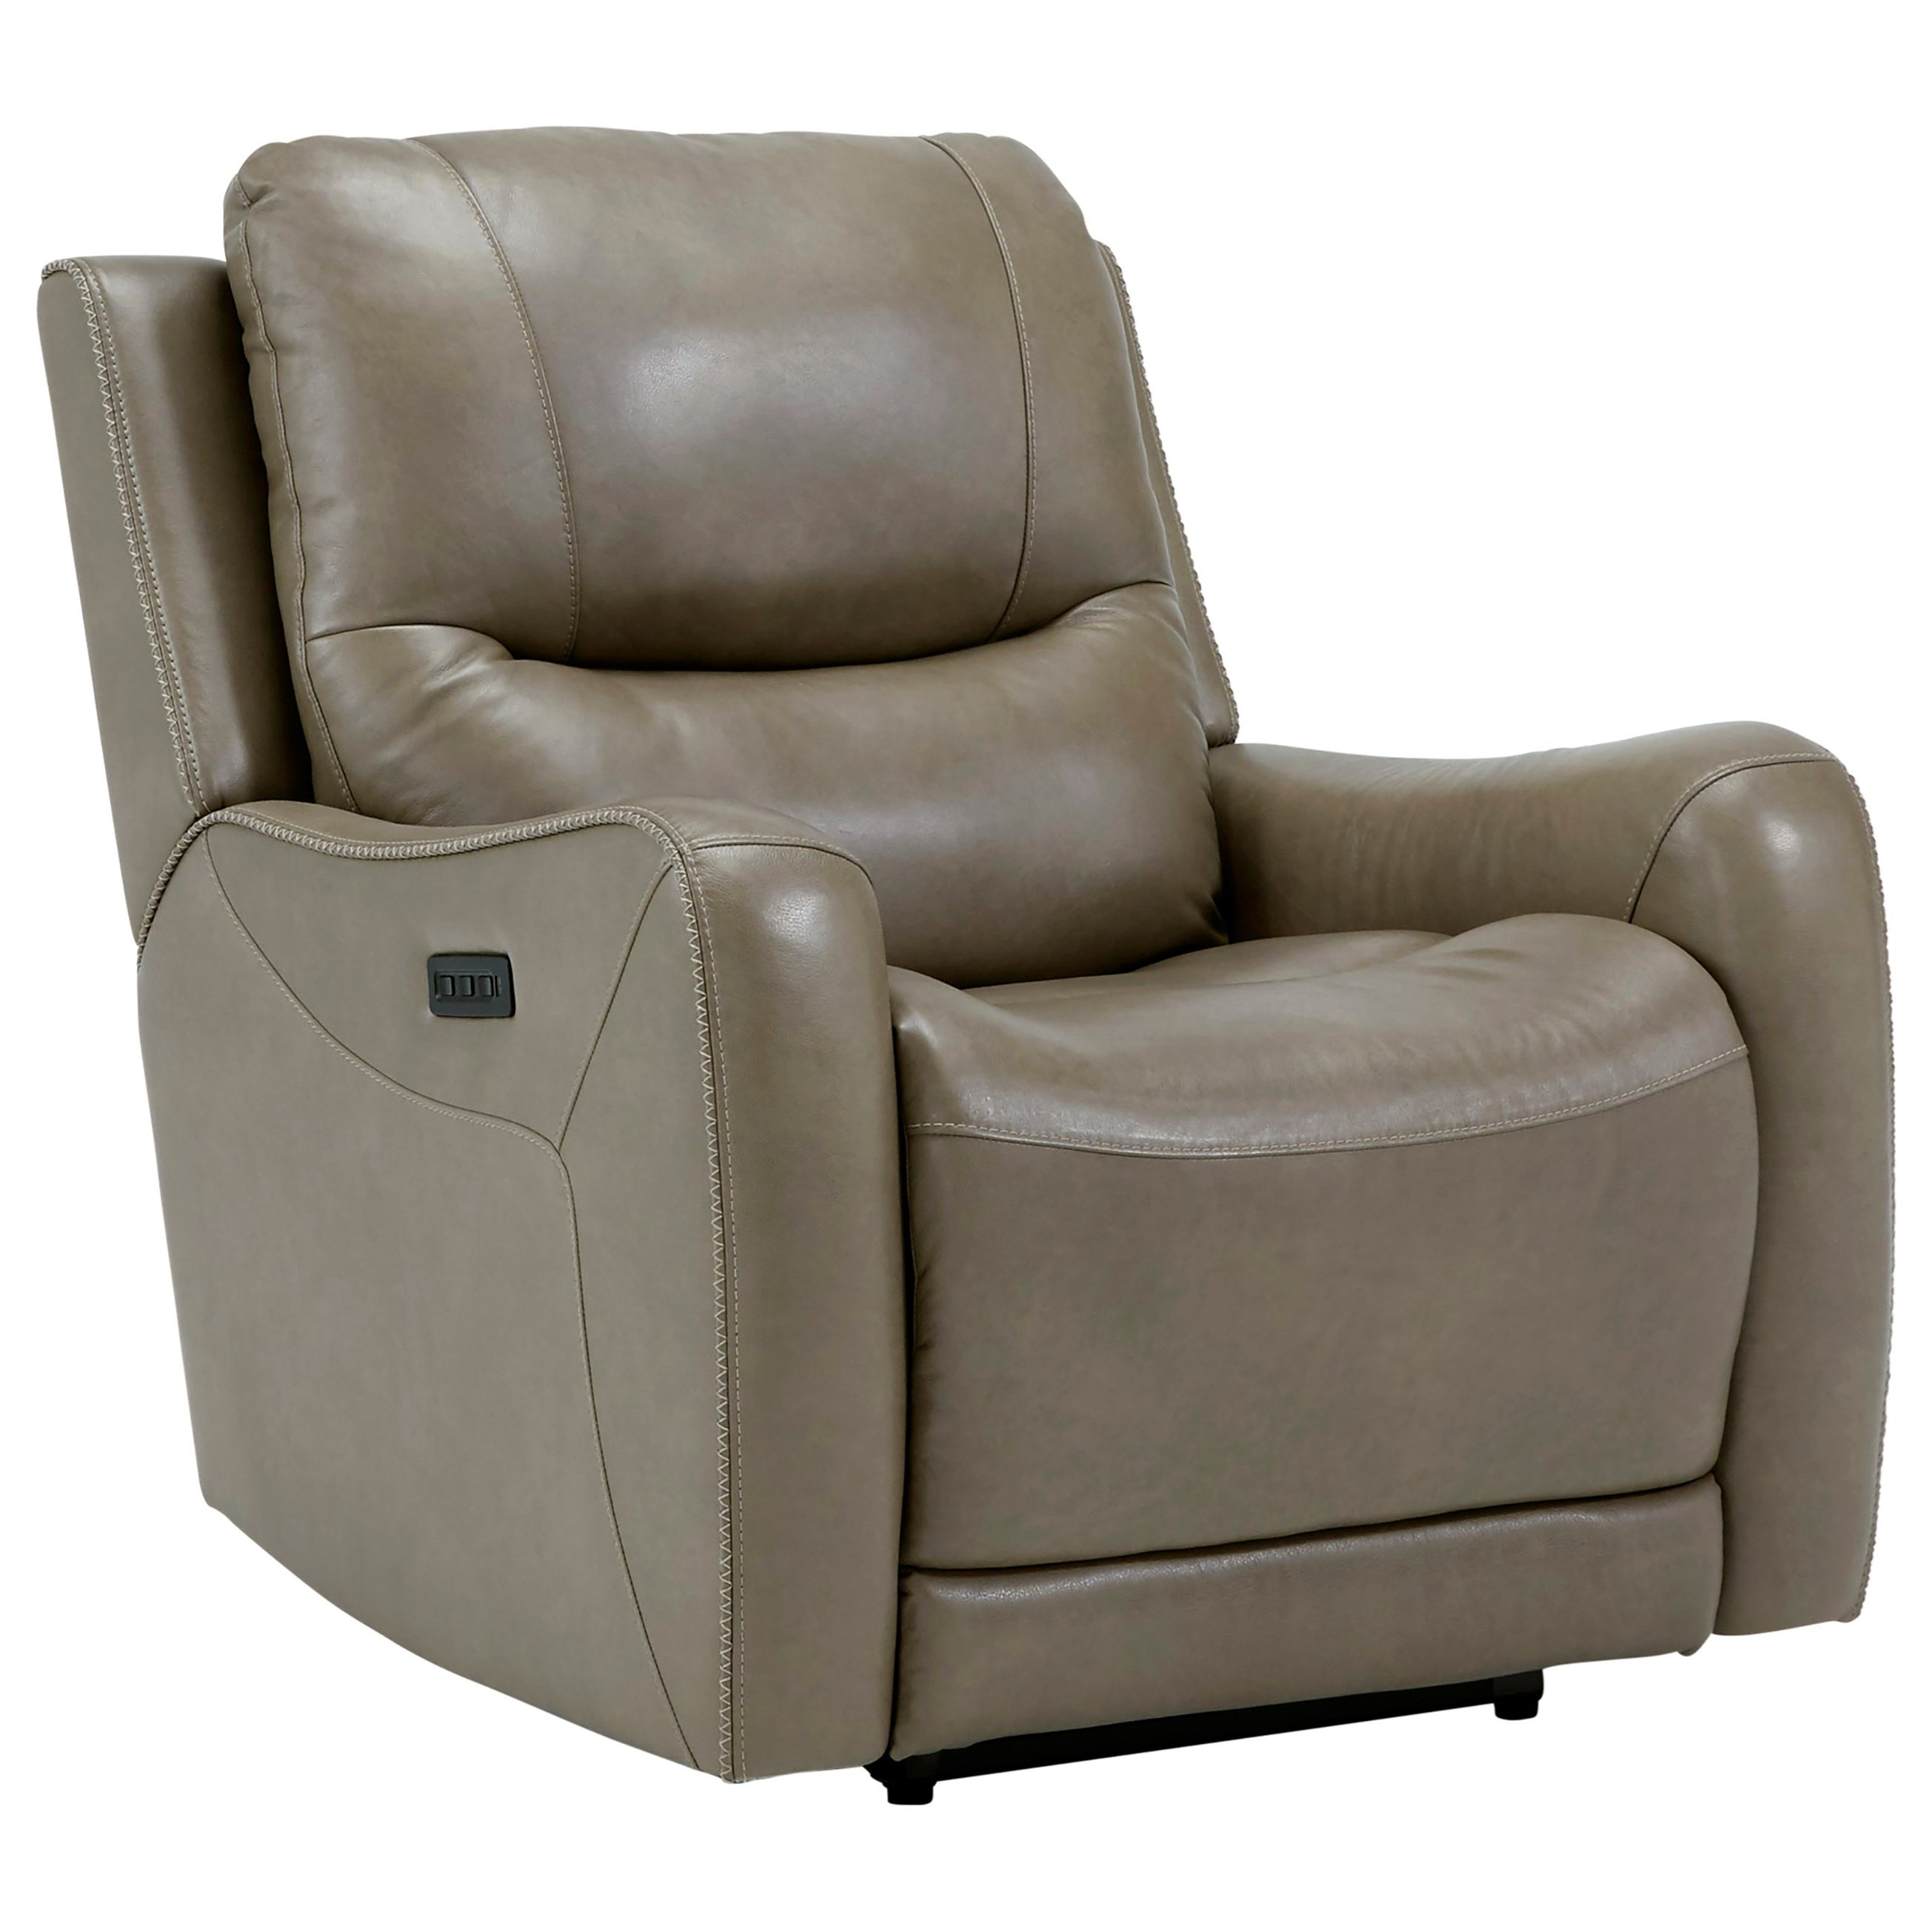 Galahad Zero Wall Recliner w/ Power Headrest by Signature Design by Ashley at Northeast Factory Direct